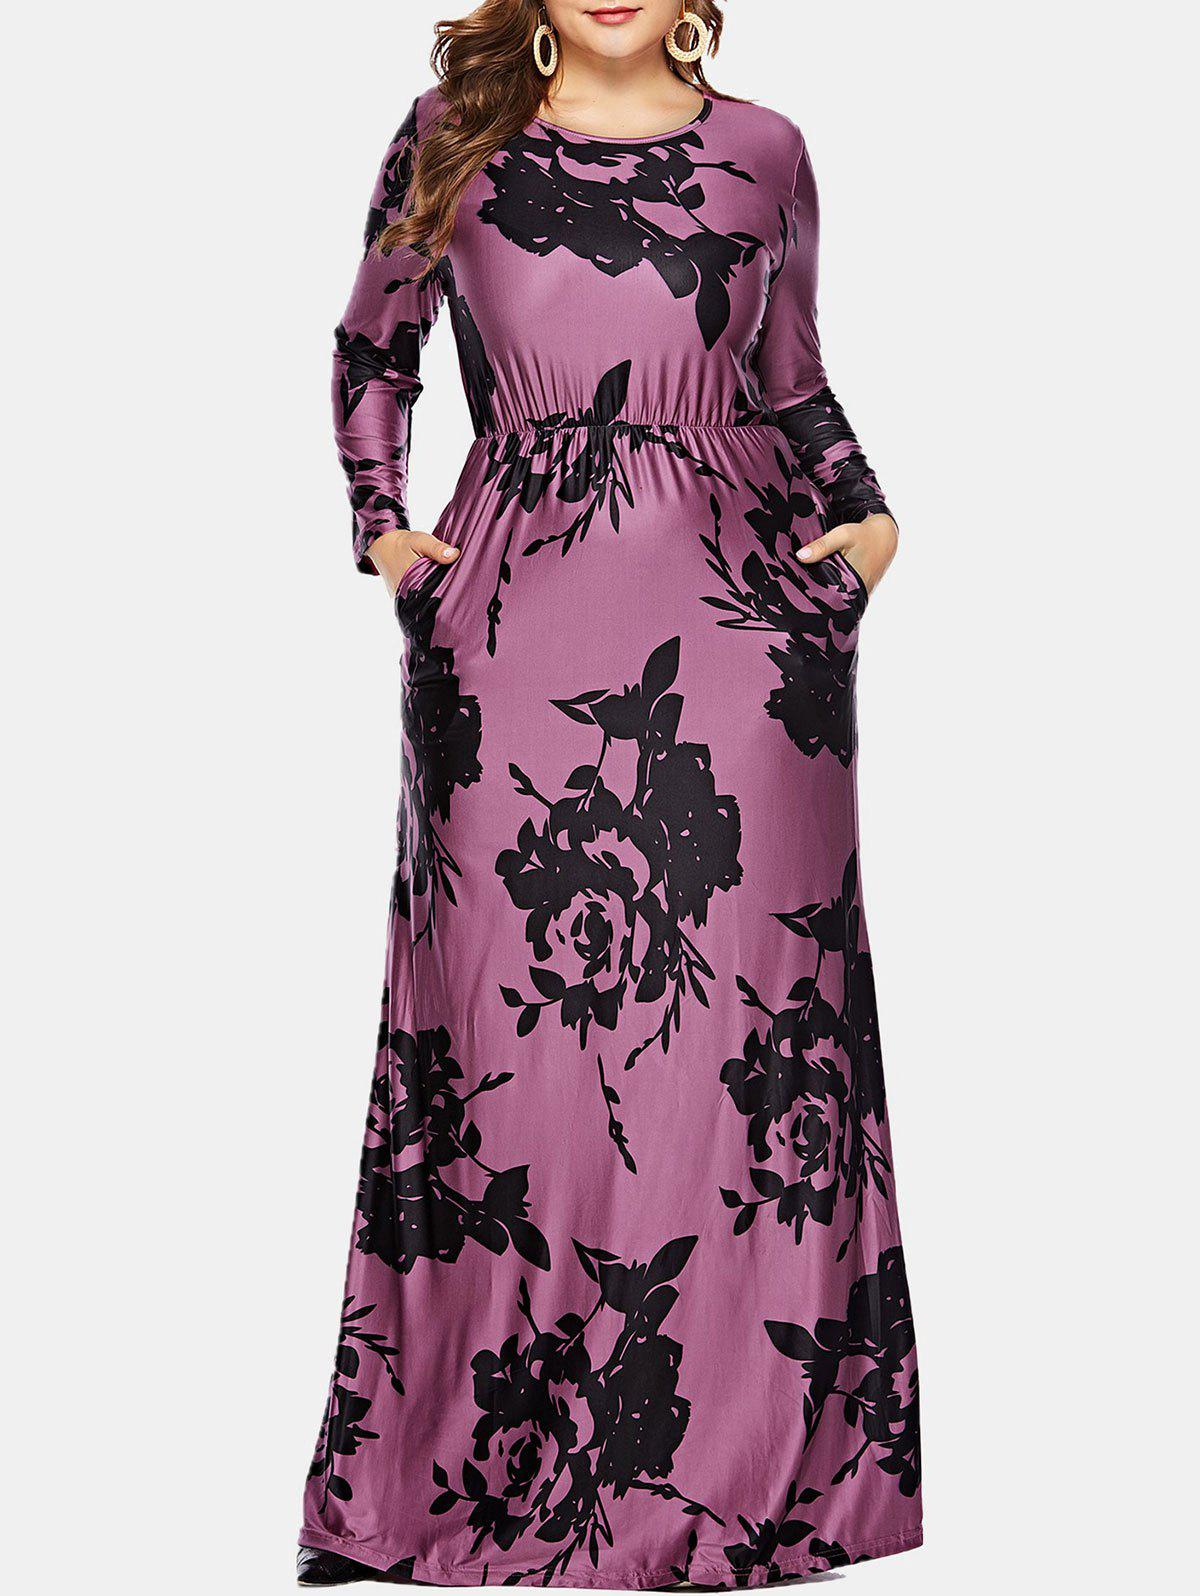 32% OFF] Plus Size Floral Pocket Maxi Dress | Rosegal